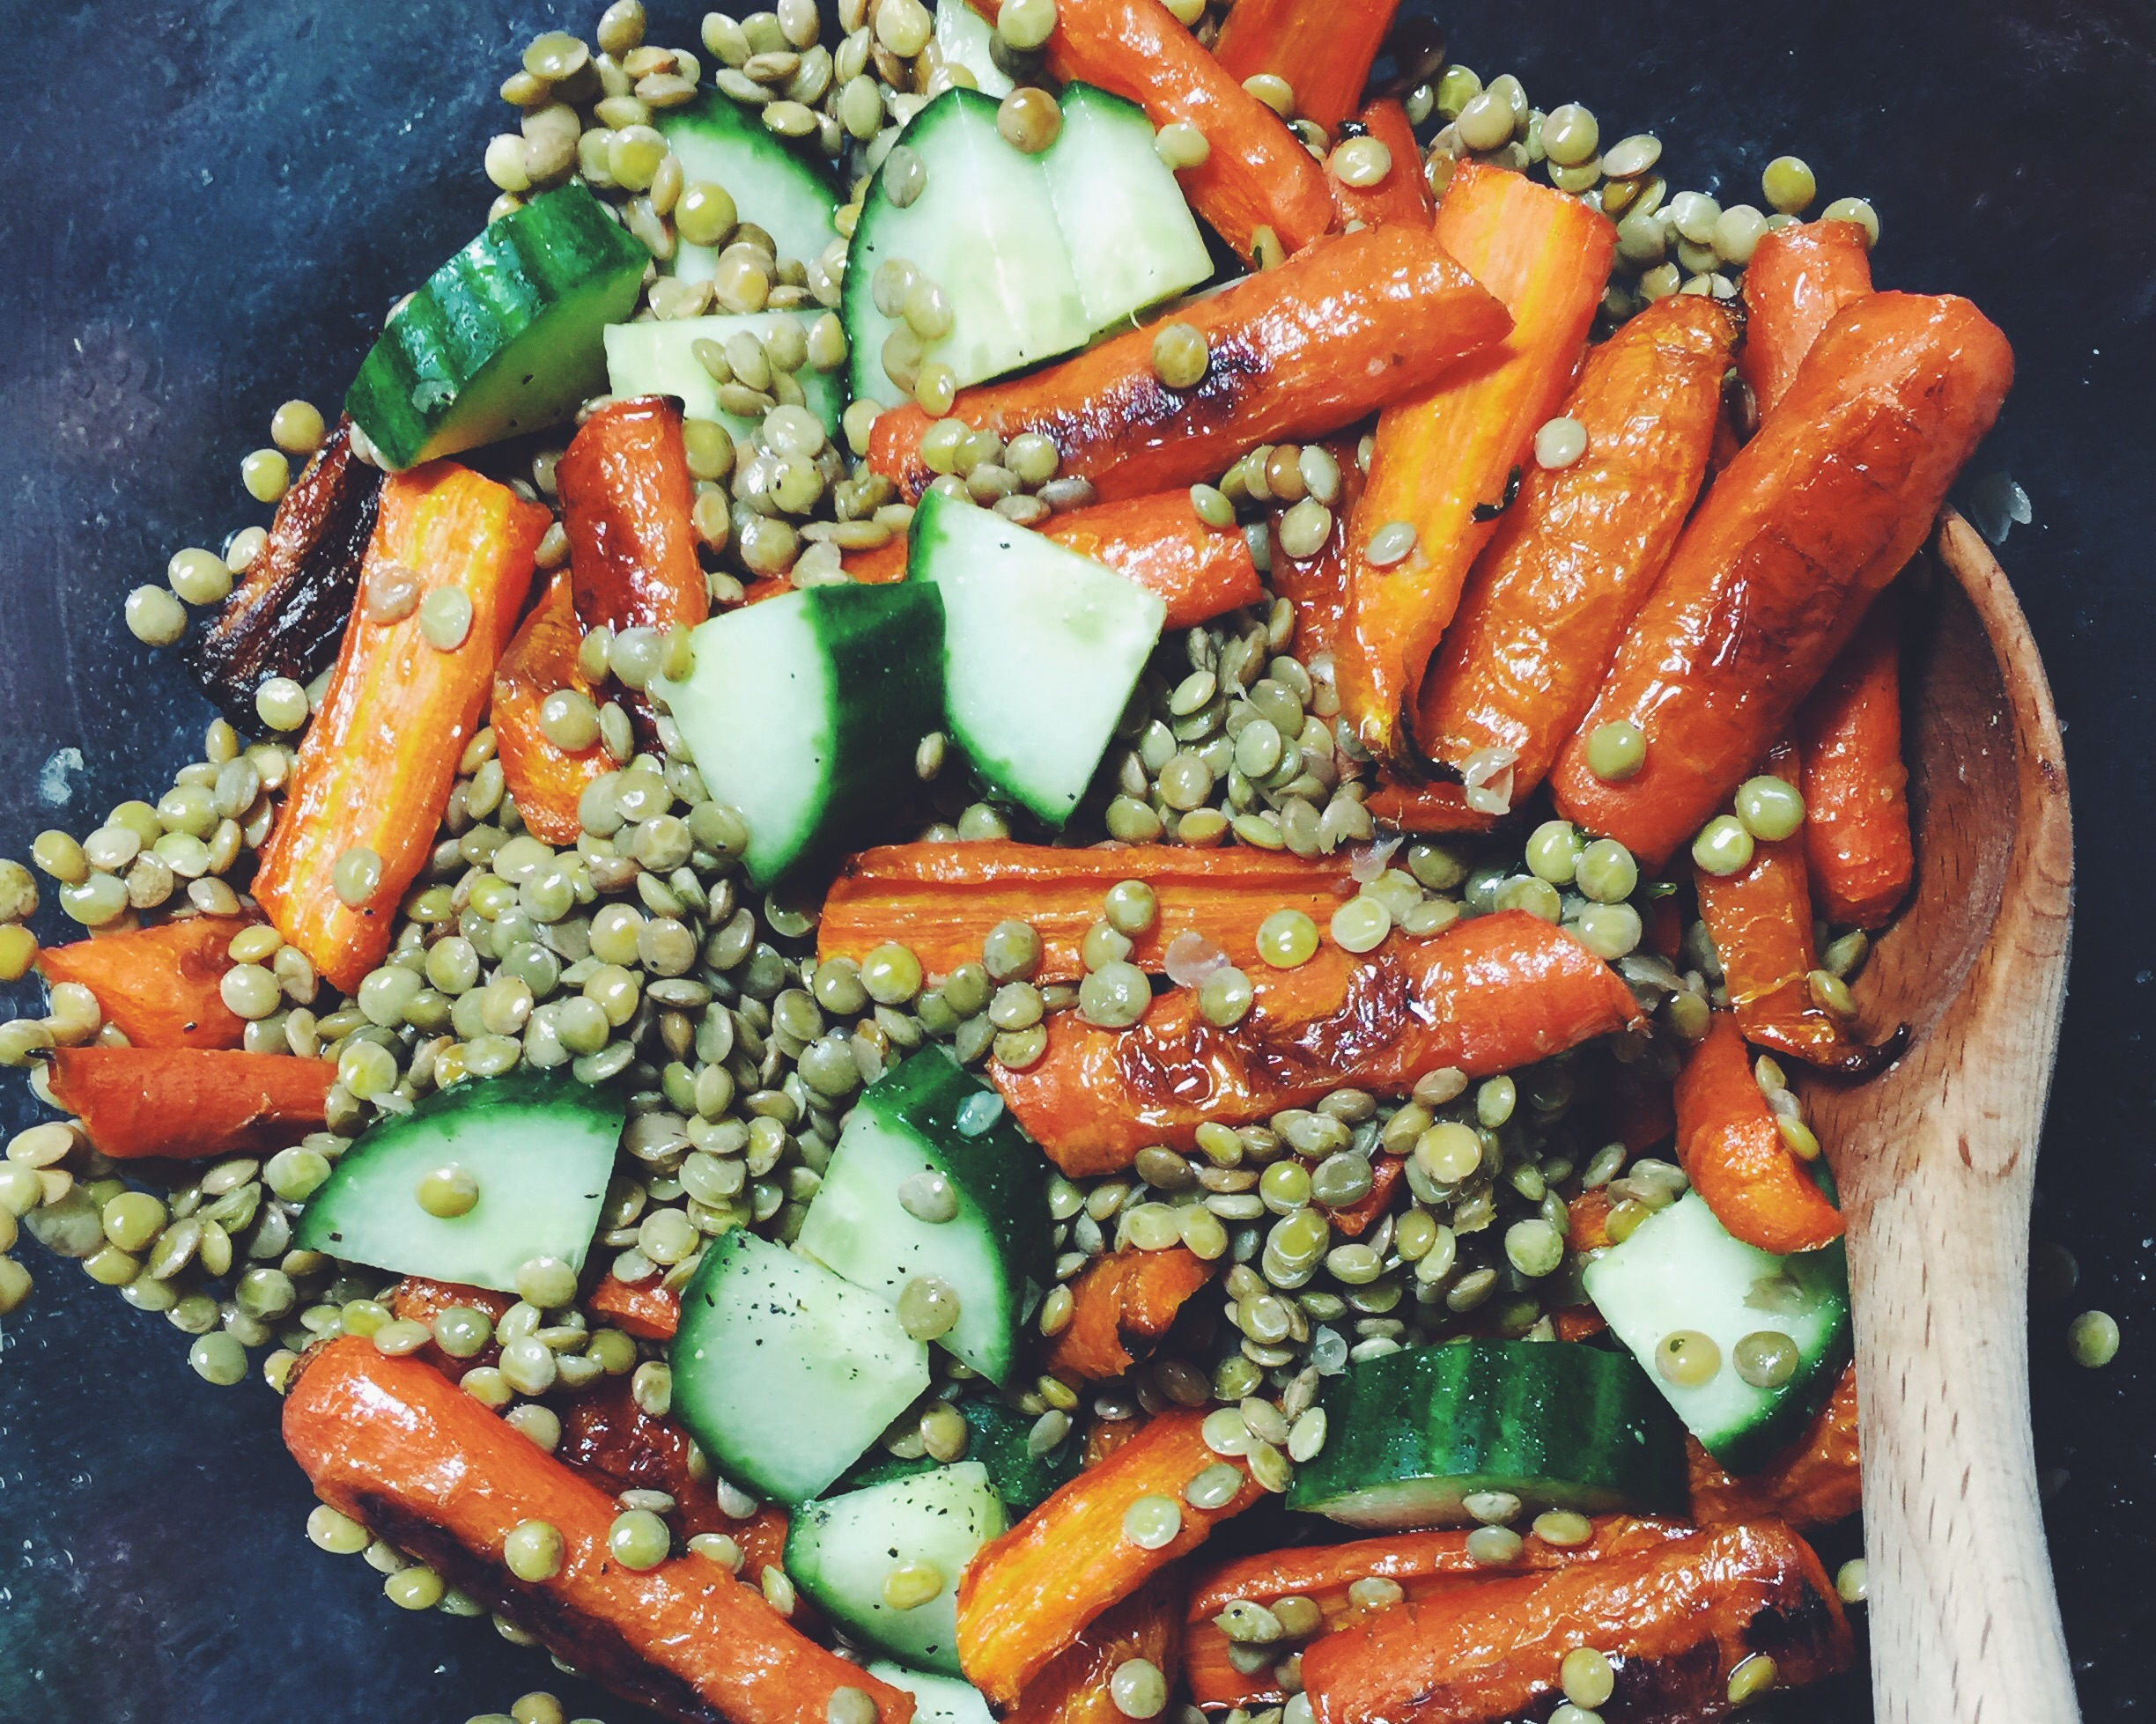 lentil salad with carrots and cucumber